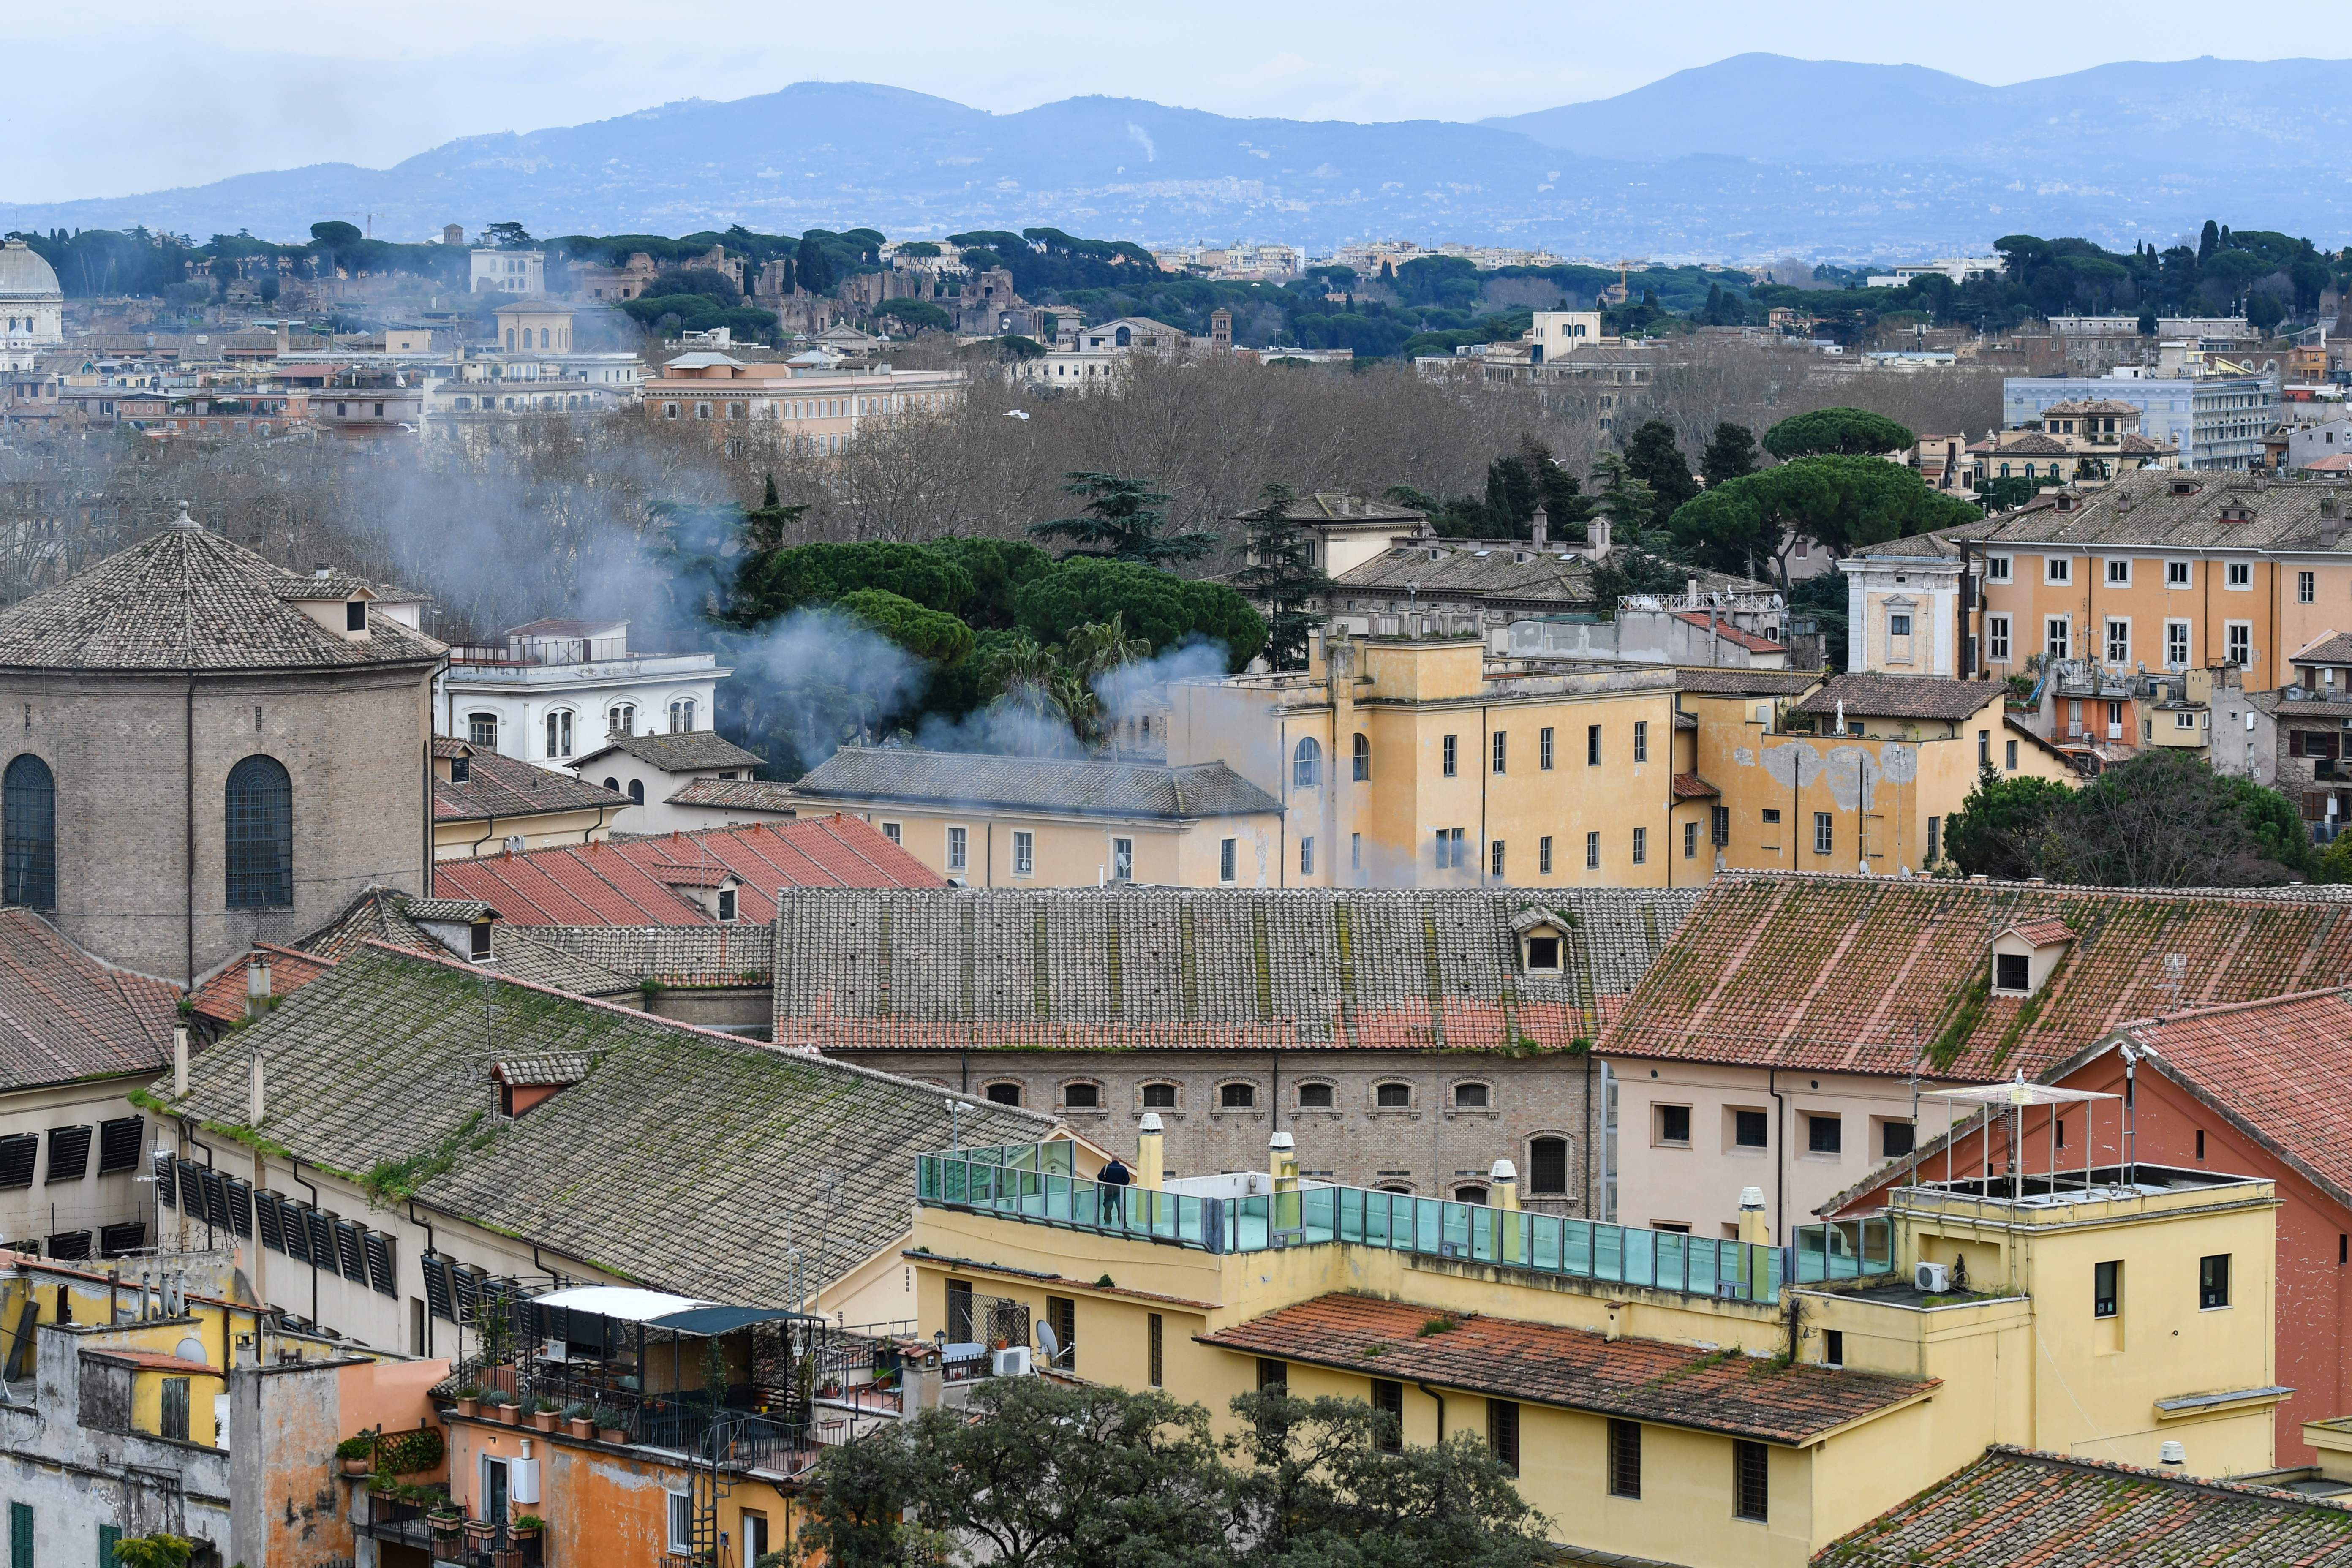 Smoke billows from a rooftop of the Regina Coeli prison in central Rome on March 9, 2020. (ALBERTO PIZZOLI/AFP via Getty Images)